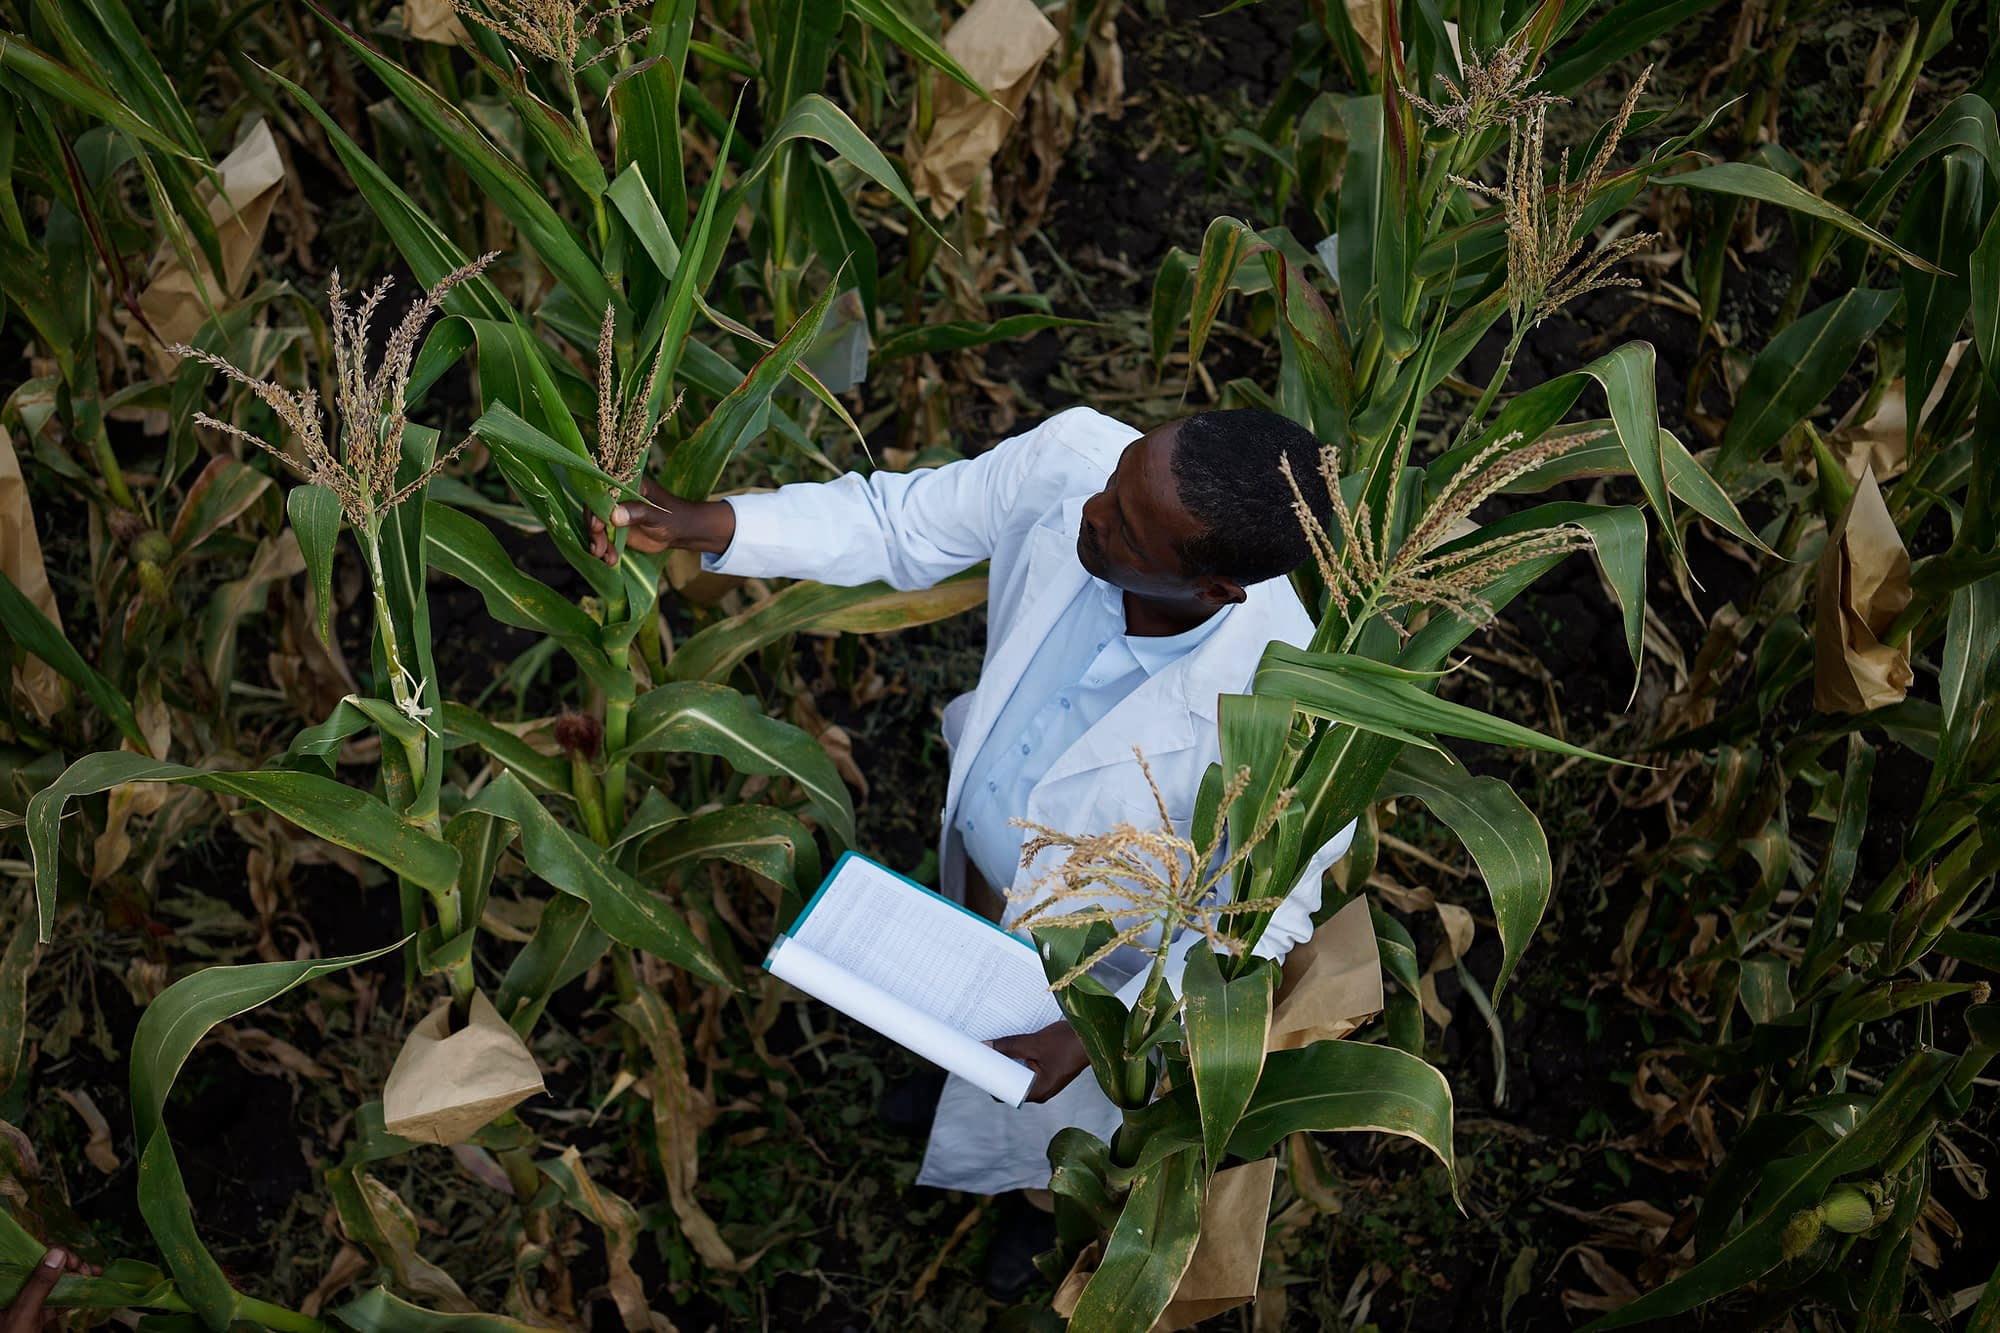 CIMMYT researcher Demewoz Negera at the Ambo Research Center in Ethiopia. (Photo: Peter Lowe/CIMMYT)